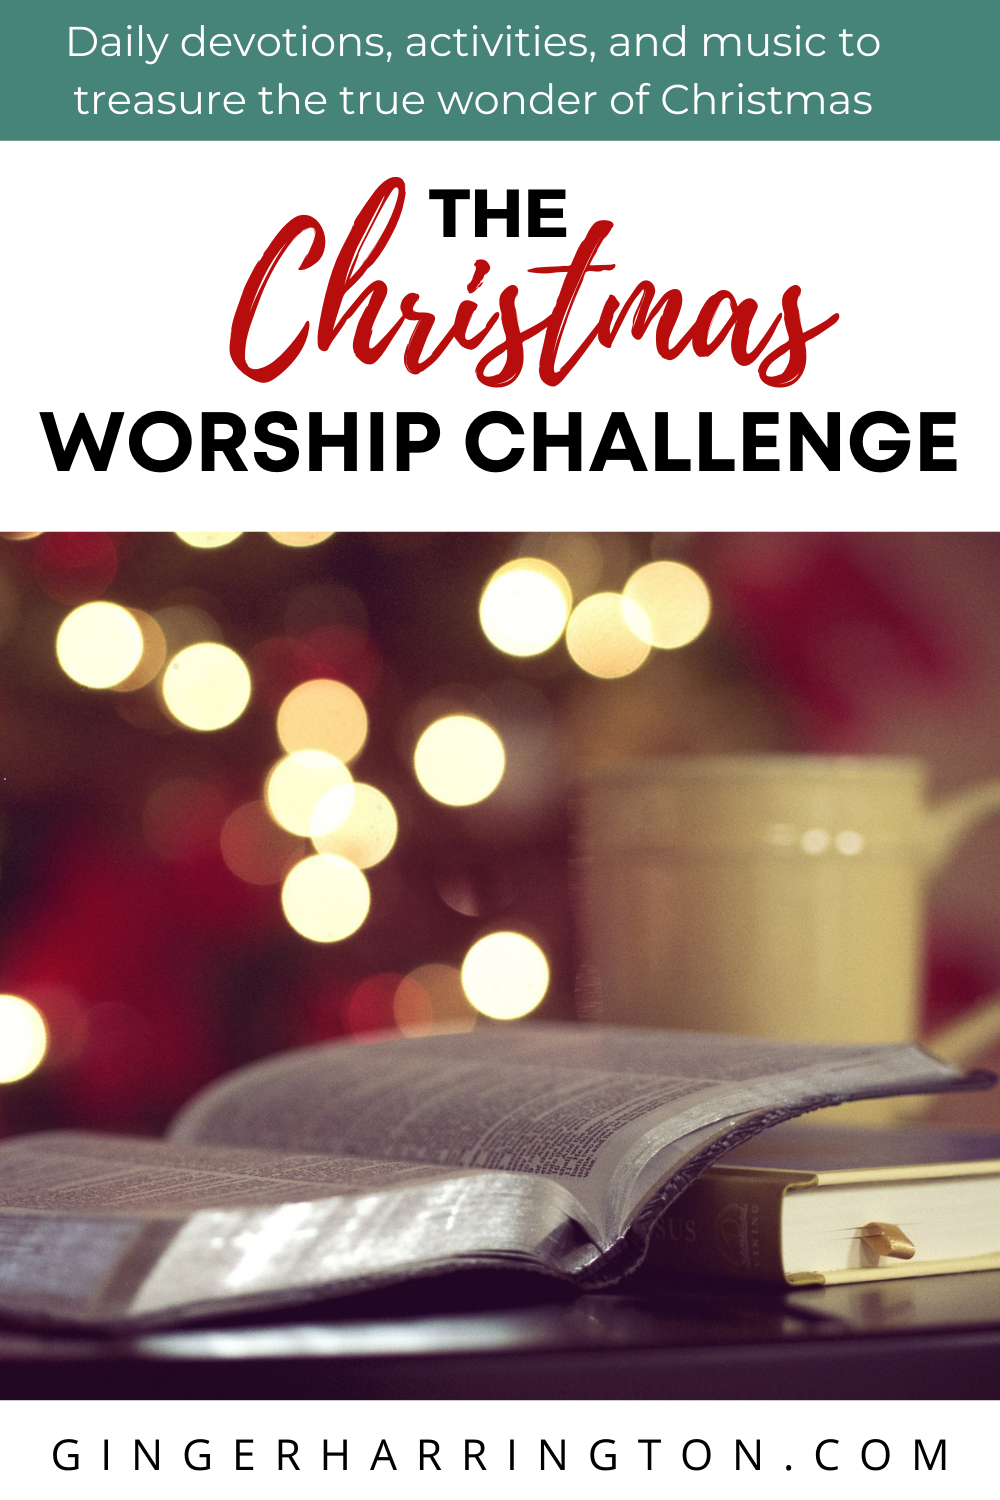 Discover the holy in your holiday with The Christmas Worship Challenge. Daily devotions, activities, and music to focus on Christ first this Christmas. Biblical wisdom for Christian women to grow spiritually this Christmas.